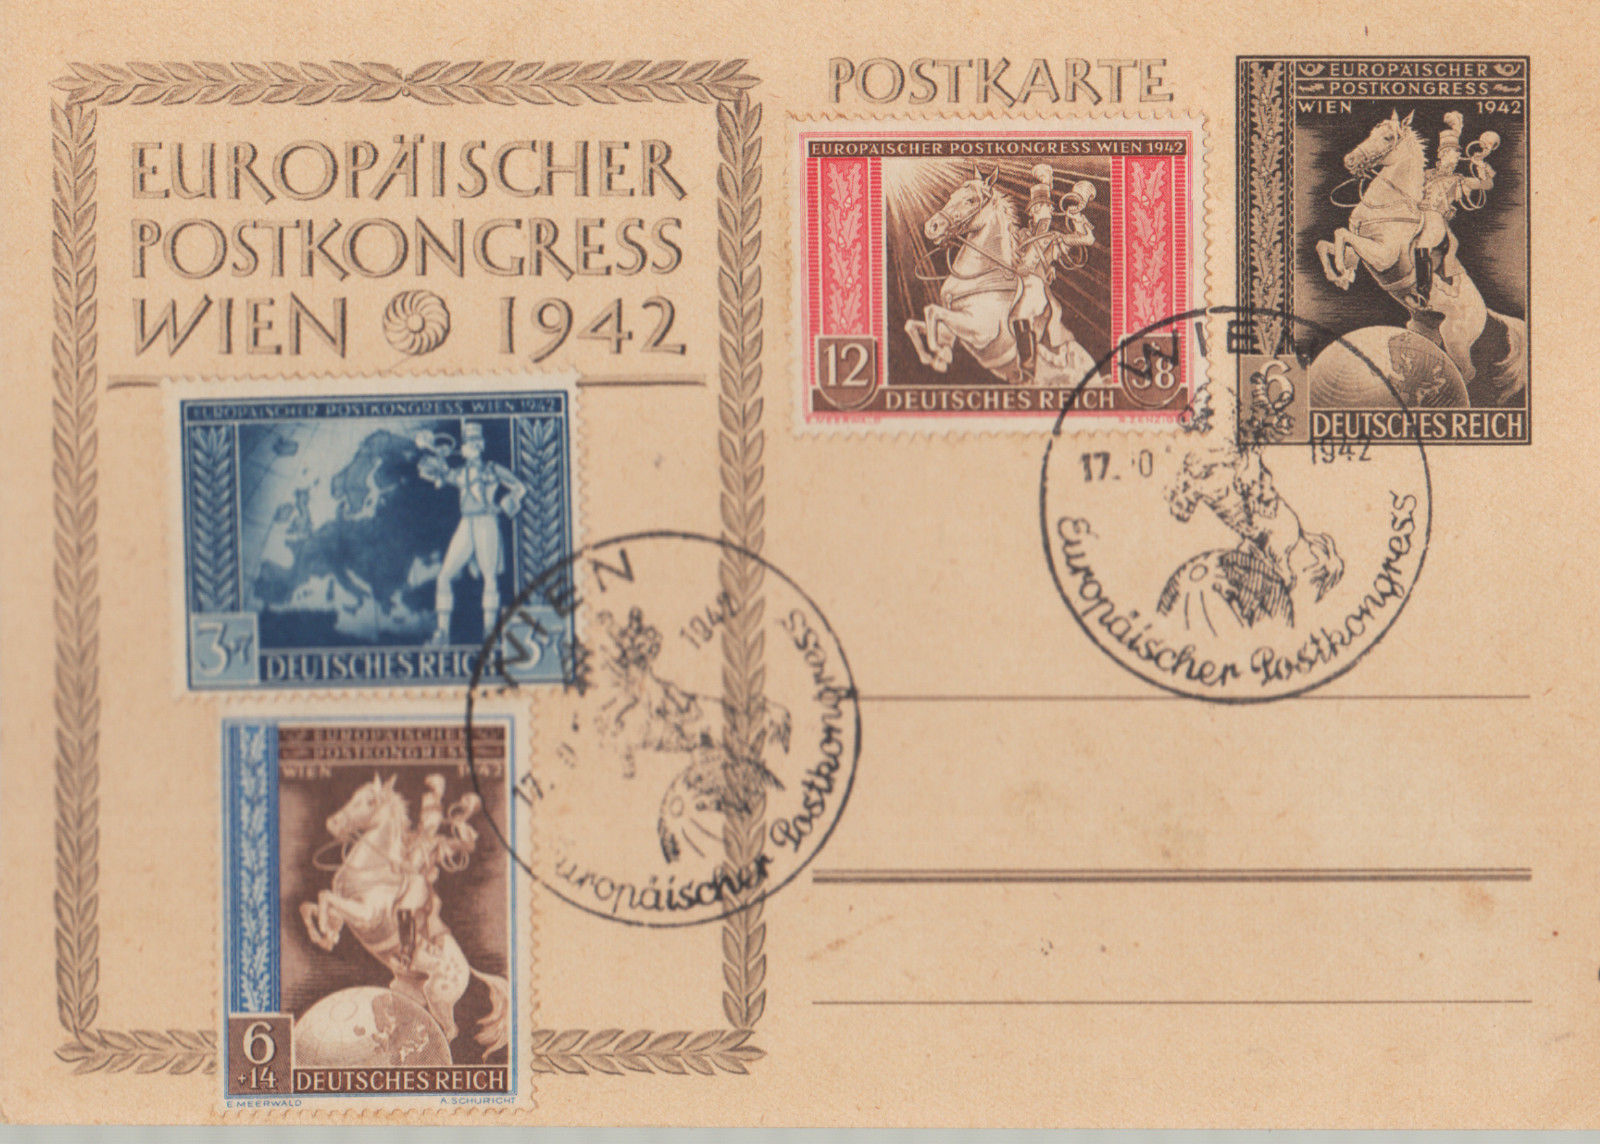 1942 postcard POST CONGRESS Vienna 1942 with special cancel